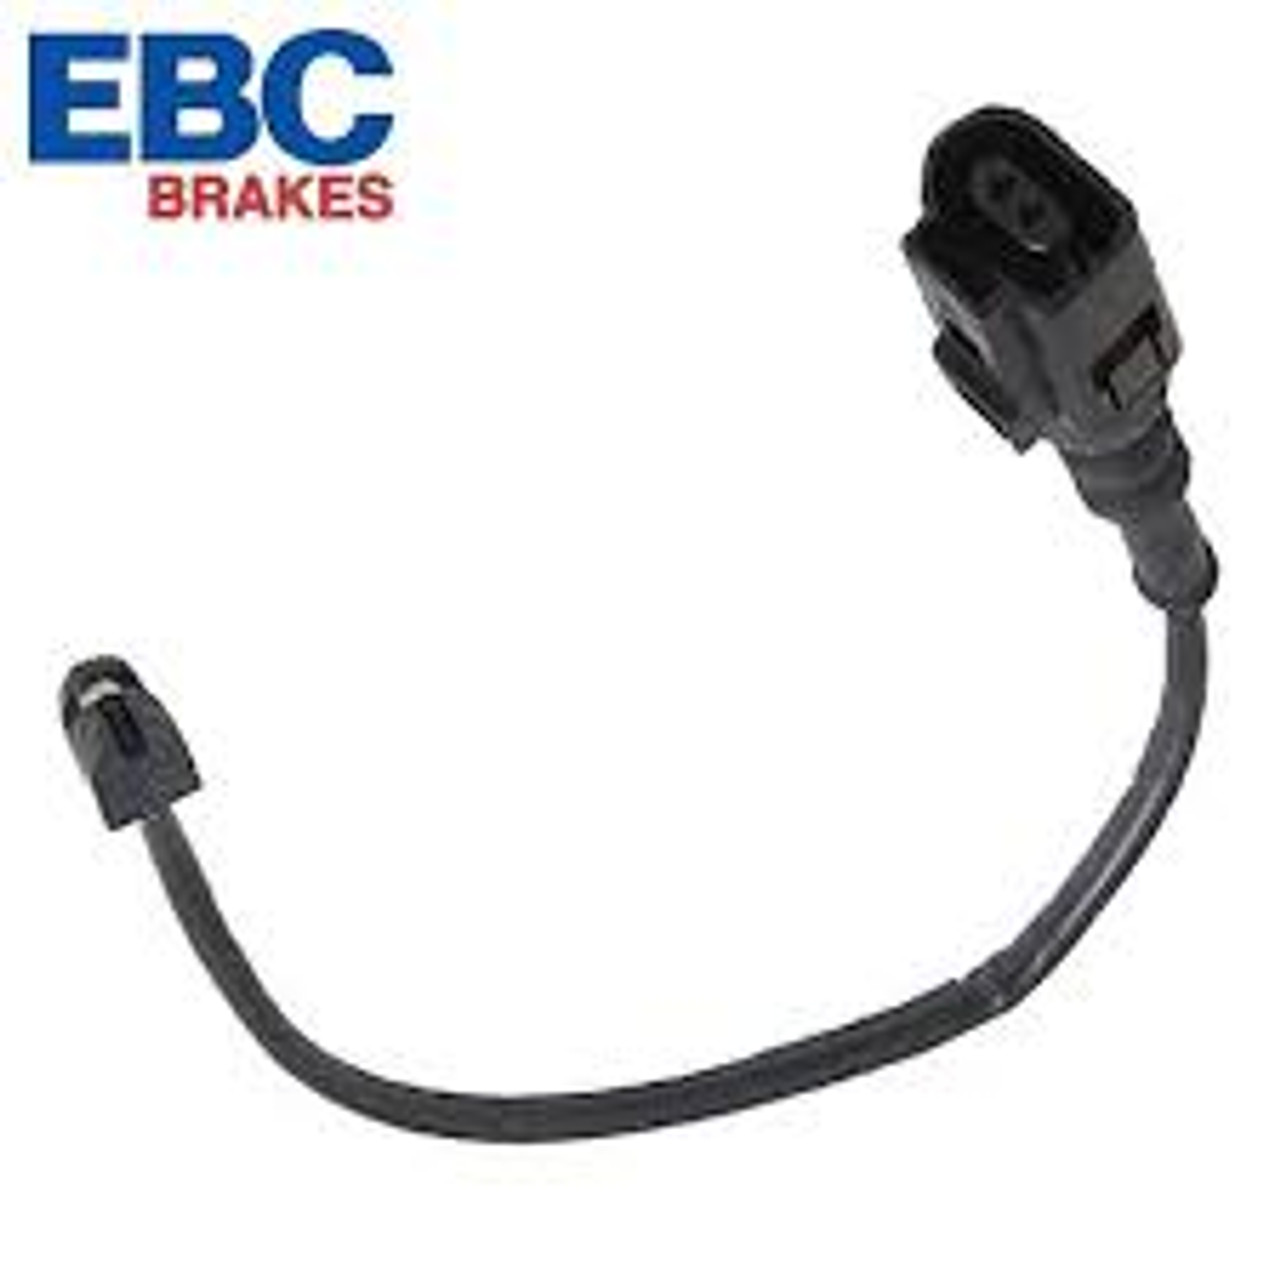 Ebc Bmw F20 F22 F30 F32 M2 M3 M4 Replacement Rear Brake Pad Wear Sensor Lead Ssdd Motorsport Ltd